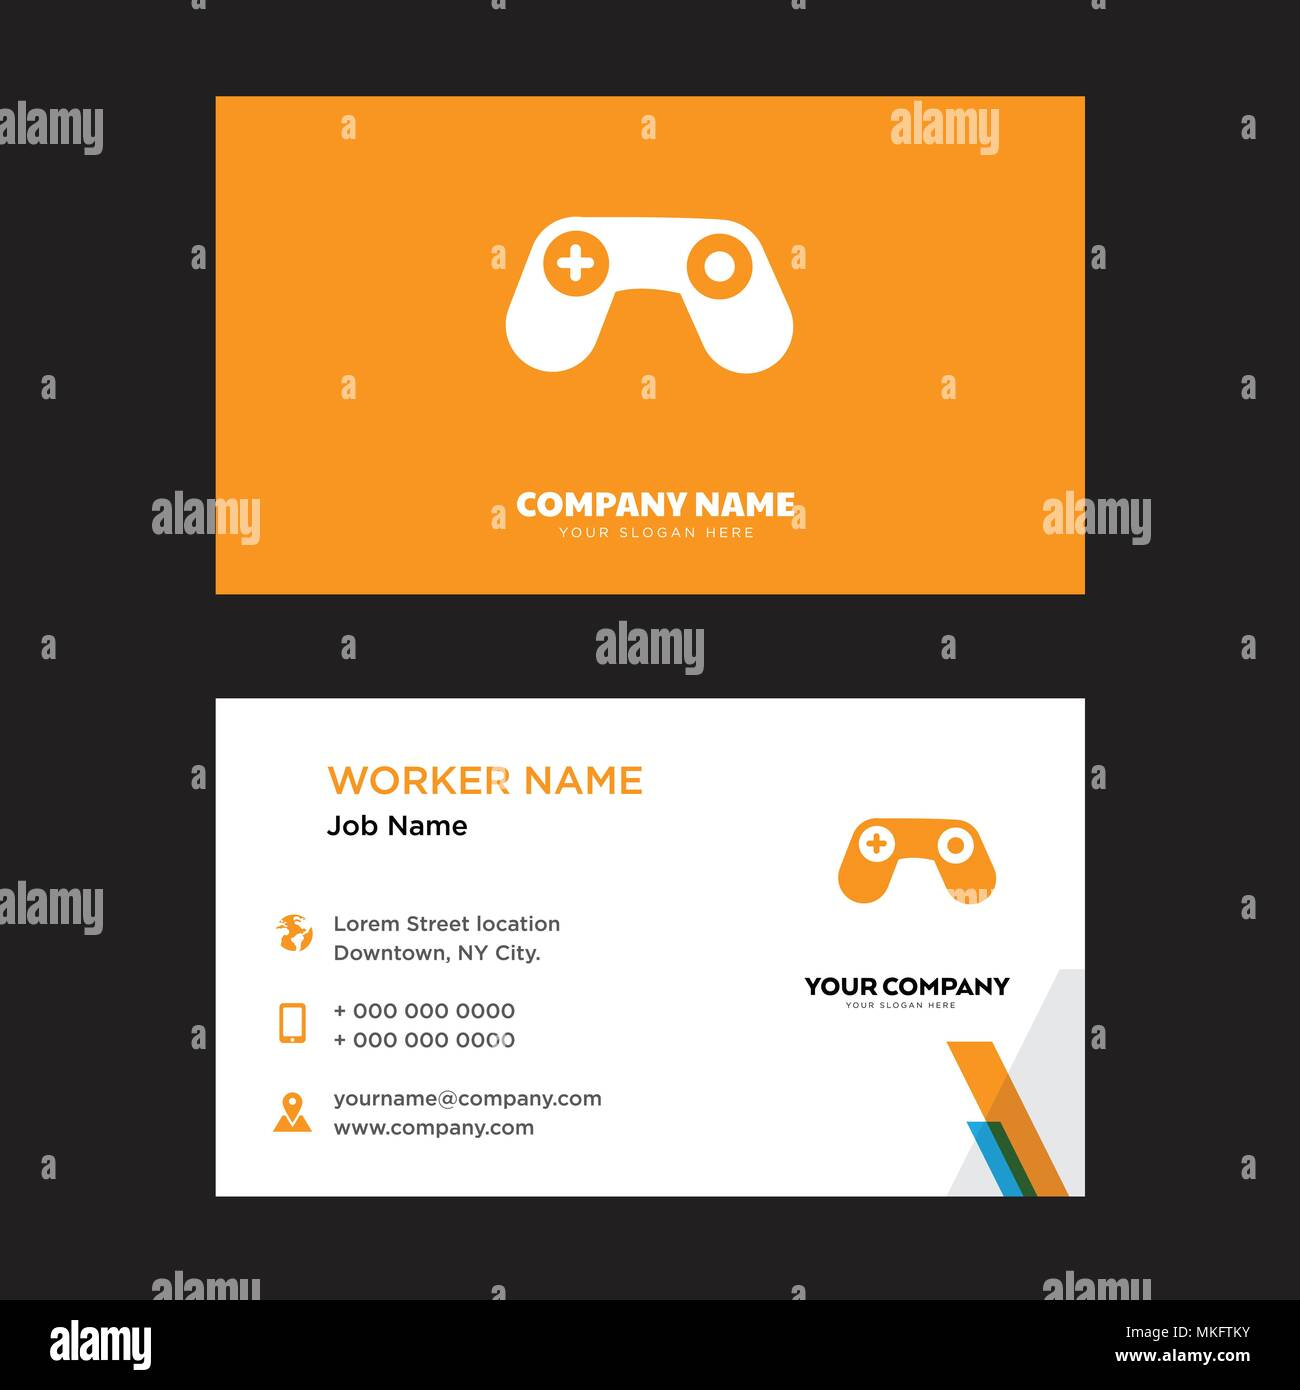 game business card design template visiting for your company